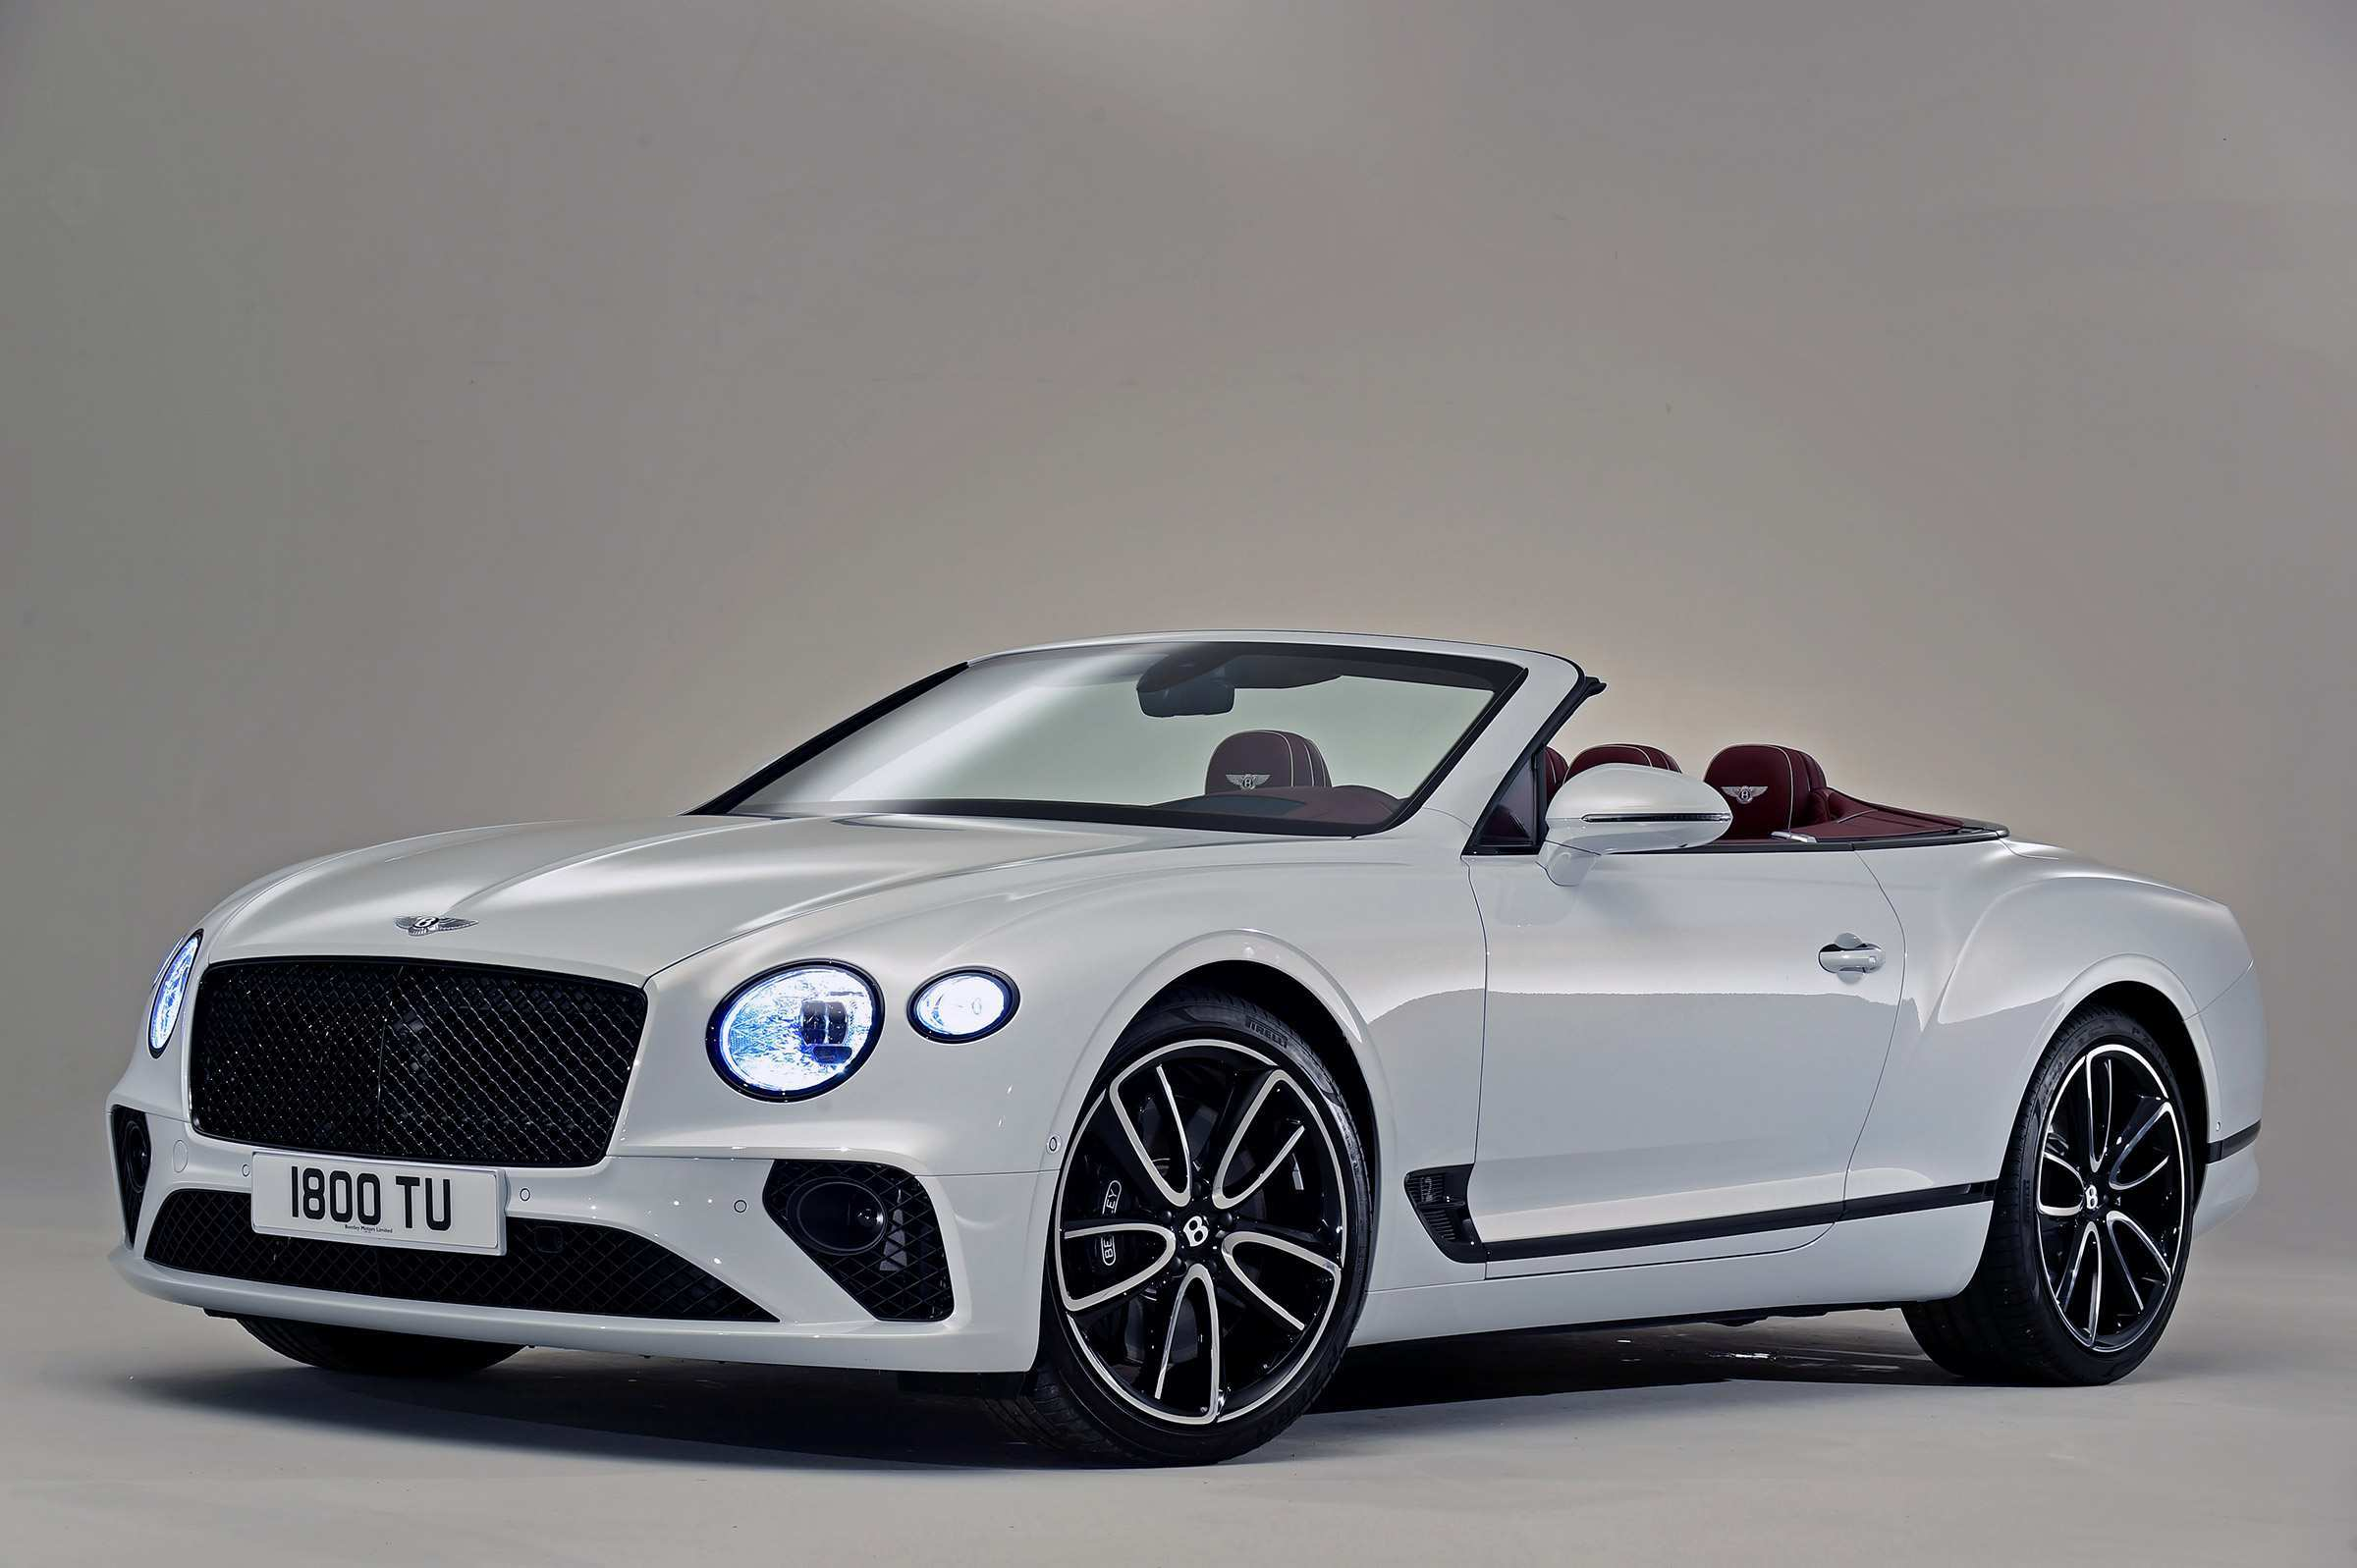 61 Gallery of 2019 Bentley Gt New Review with 2019 Bentley Gt